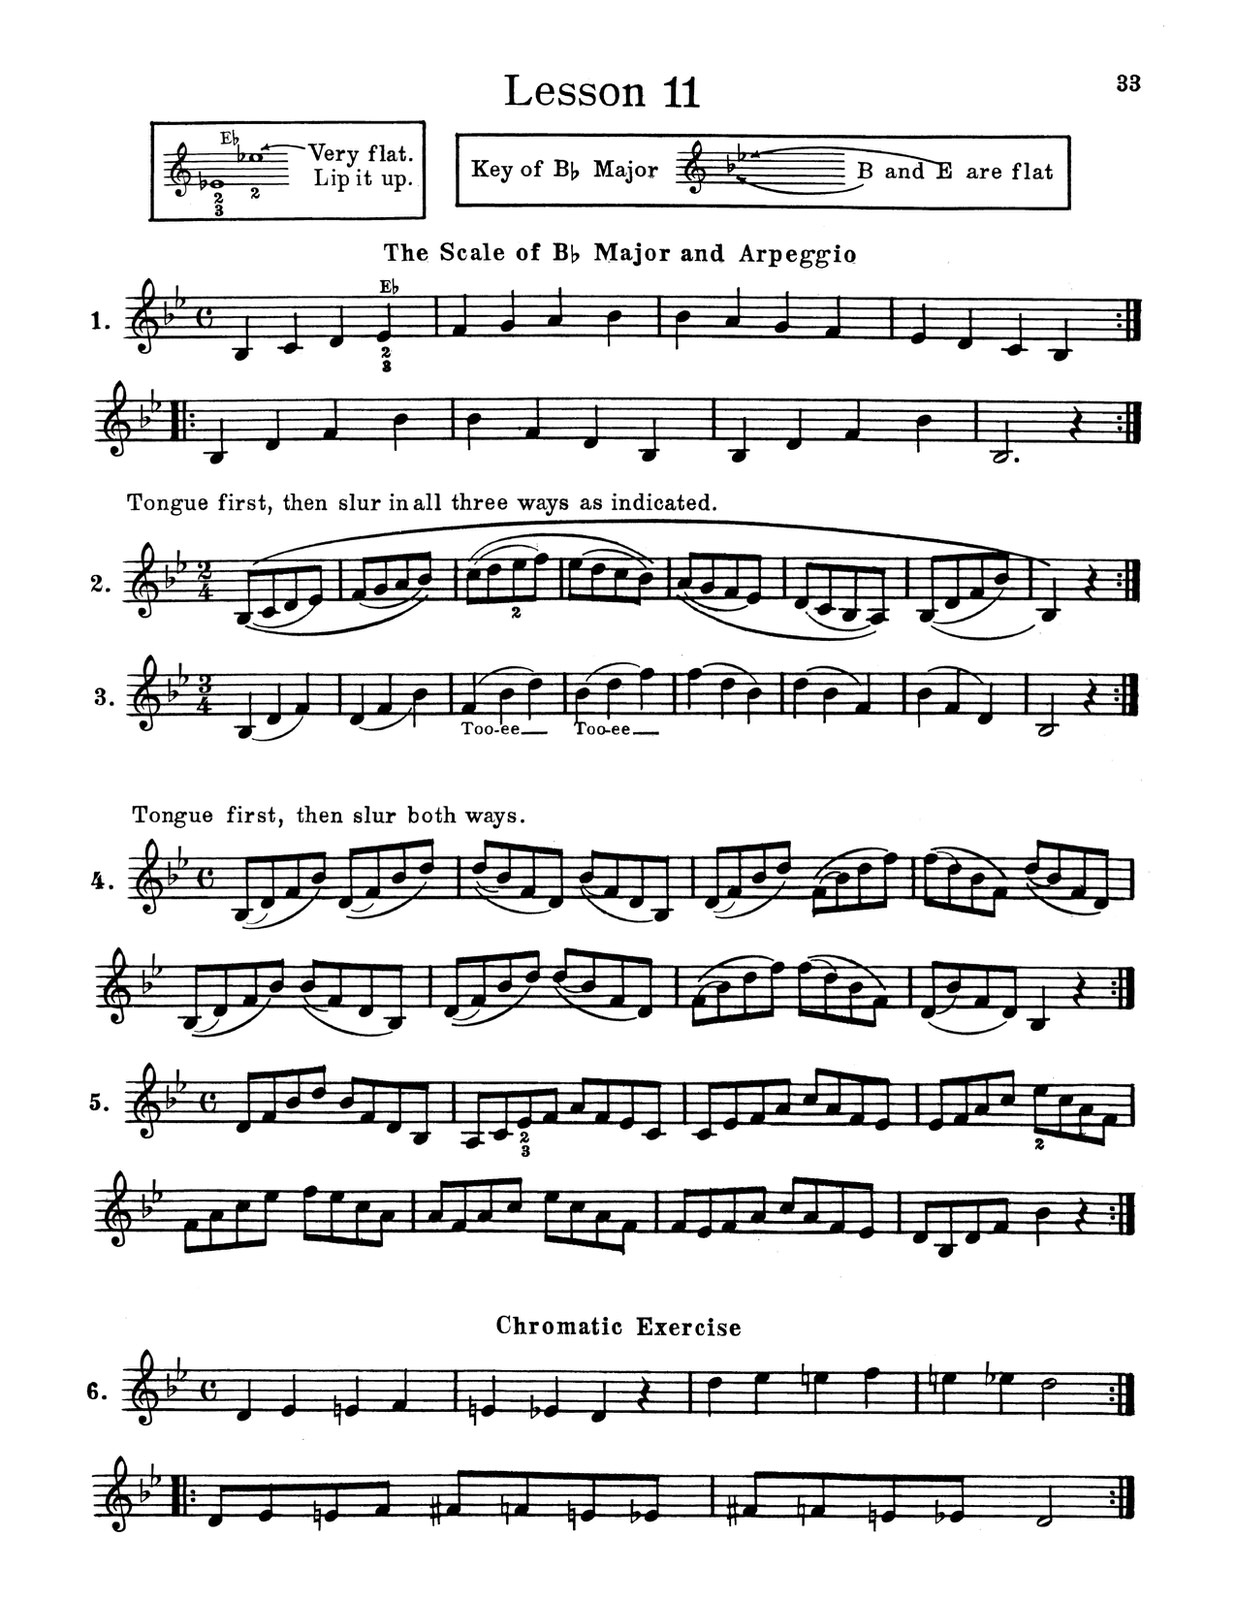 Clean Winslow, Robert, Trumpet Playing A Musical Approach Volume 1 4